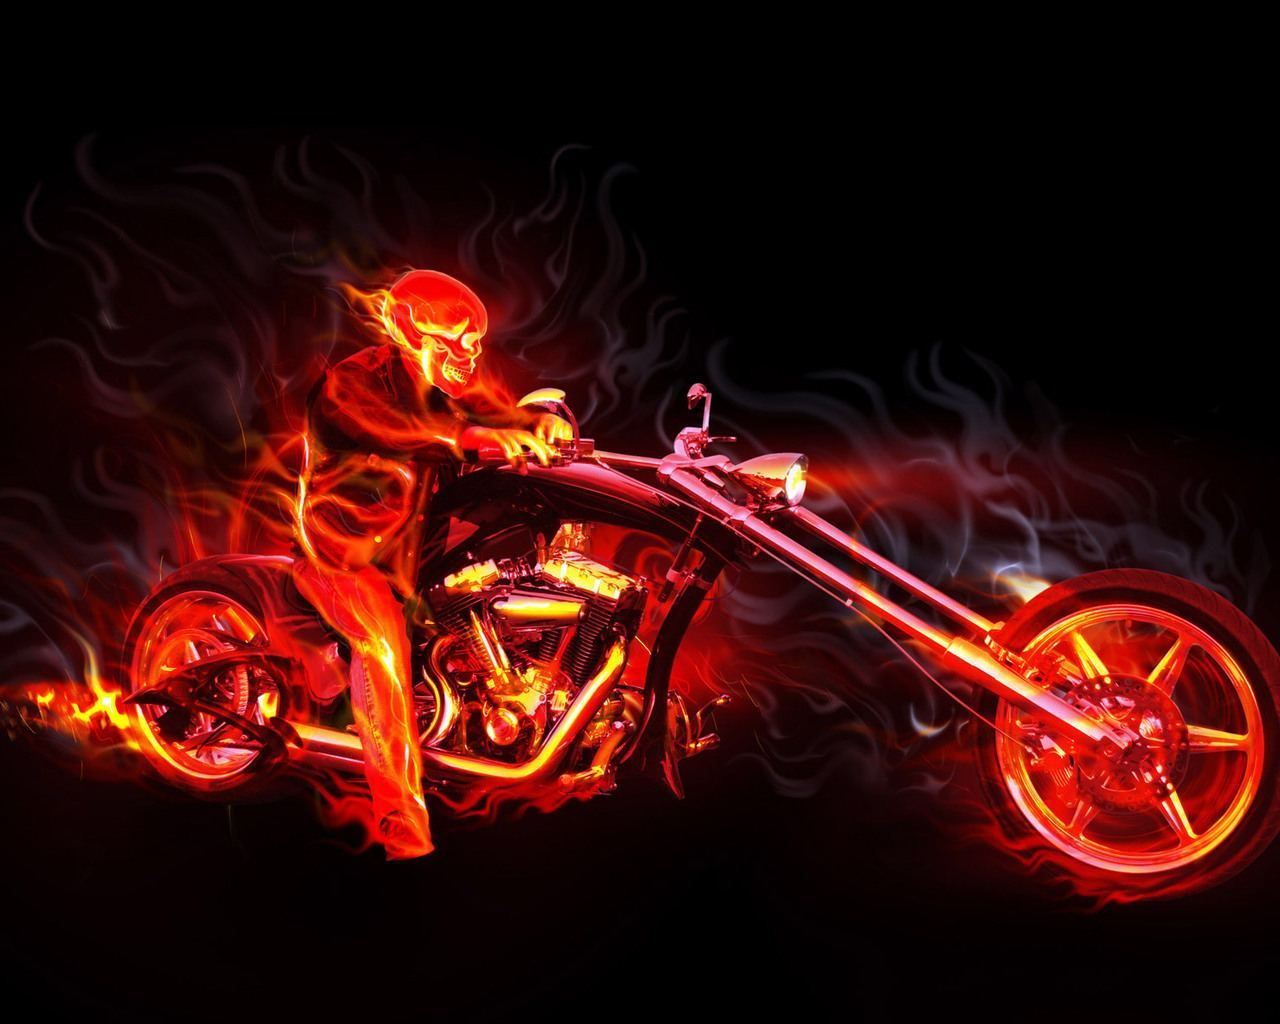 Top Wallpaper Horse Ghost Rider - 9e4ccd69fae65631cef72564d1ac6916  Perfect Image Reference_983283.jpg